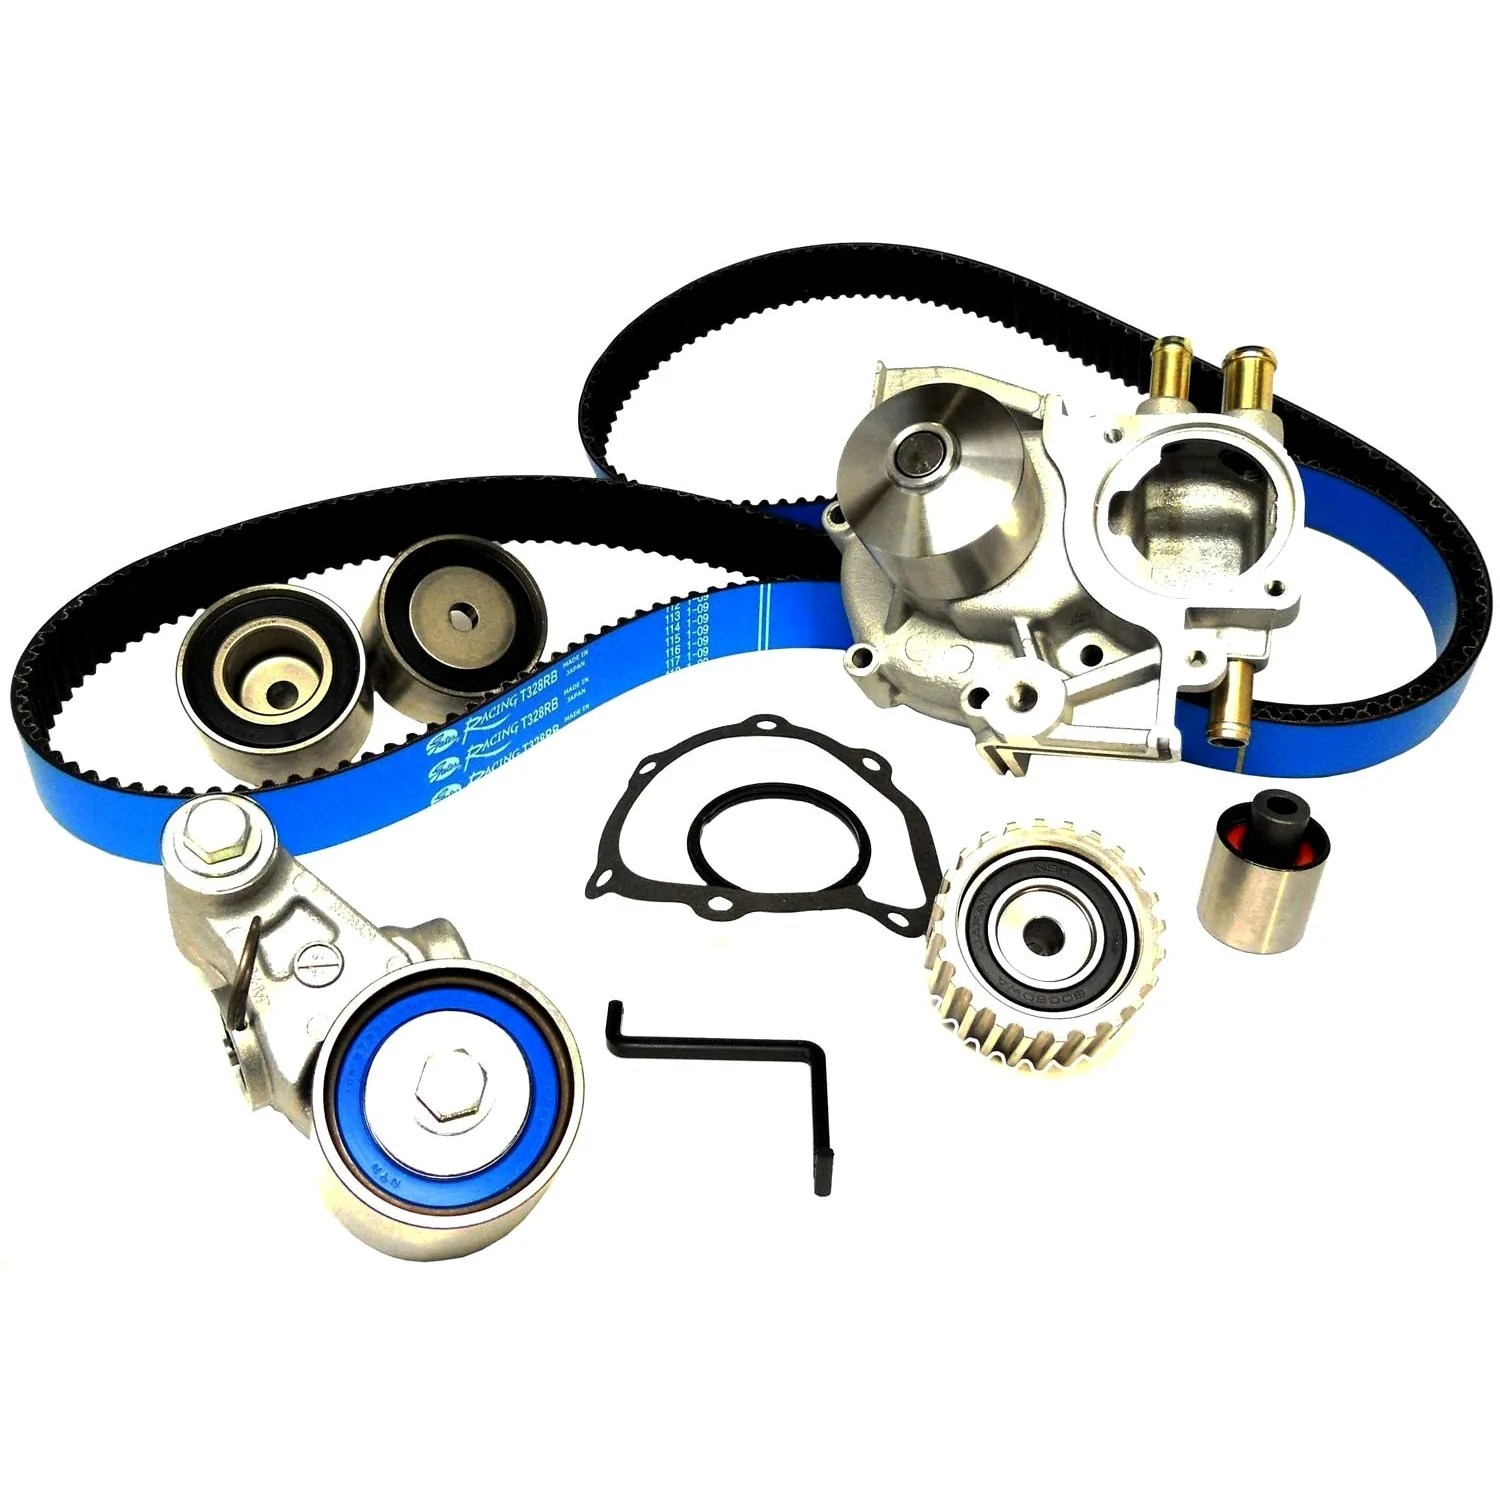 hight resolution of gates racing timing belt kit with water pump 2005 2009 legacy gt outback xt